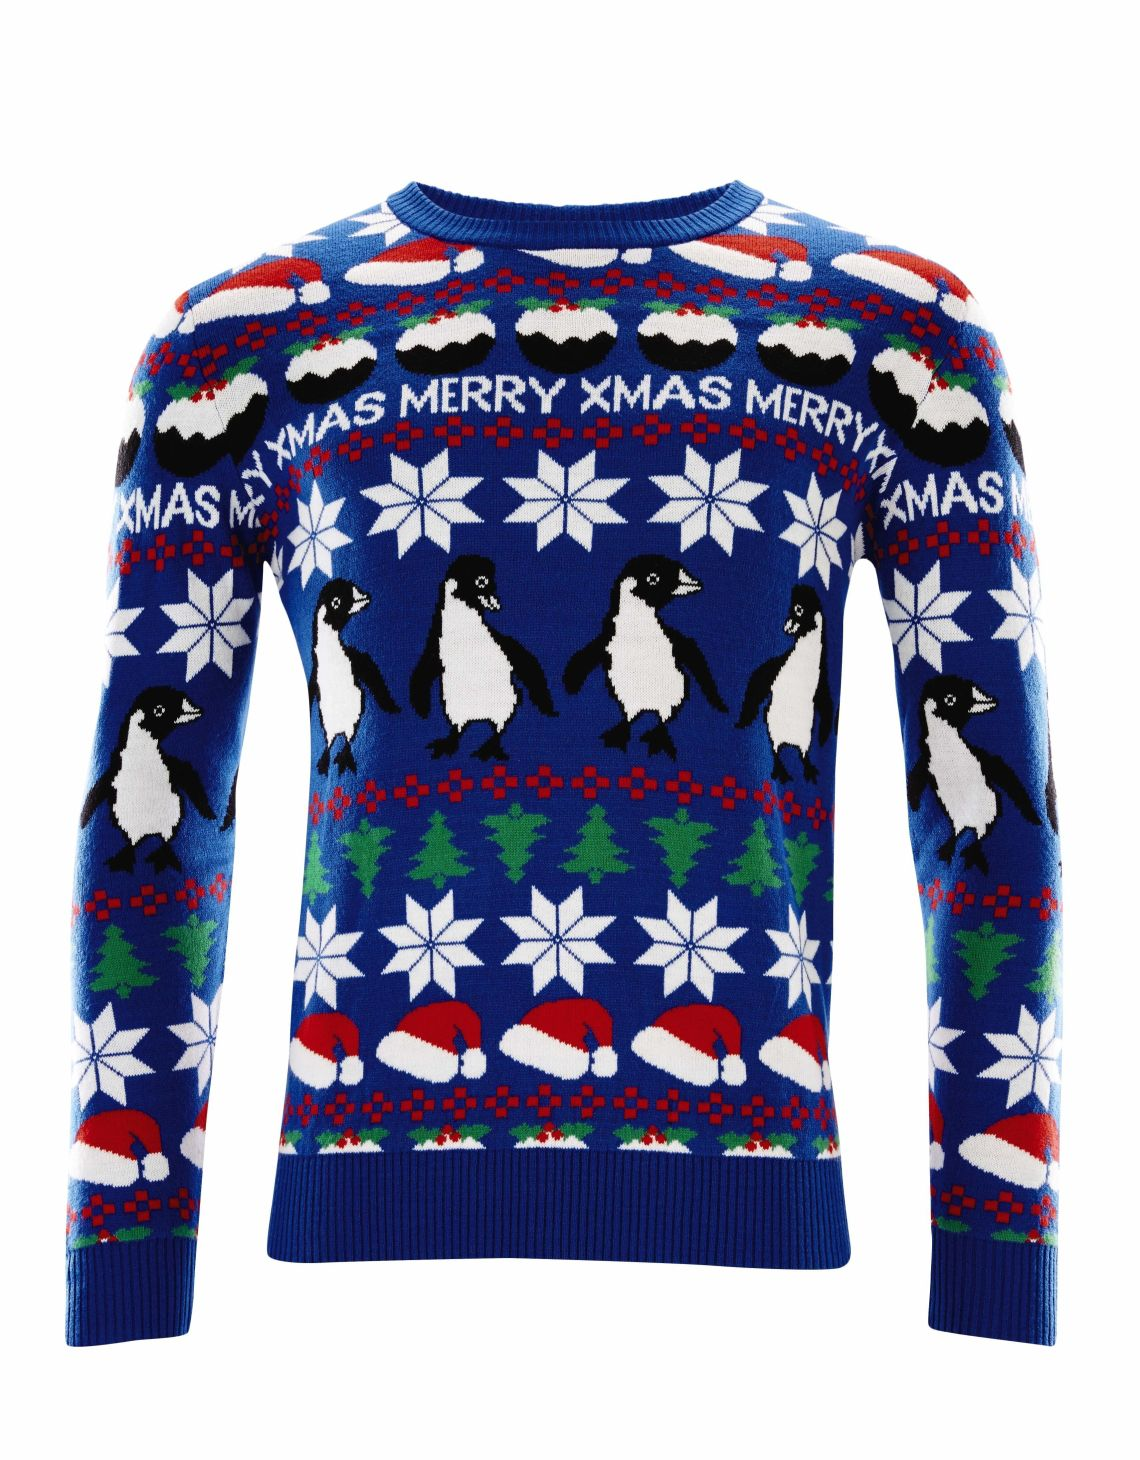 Here's Why You Shouldn't Throw Out Your Old Christmas Jumpers